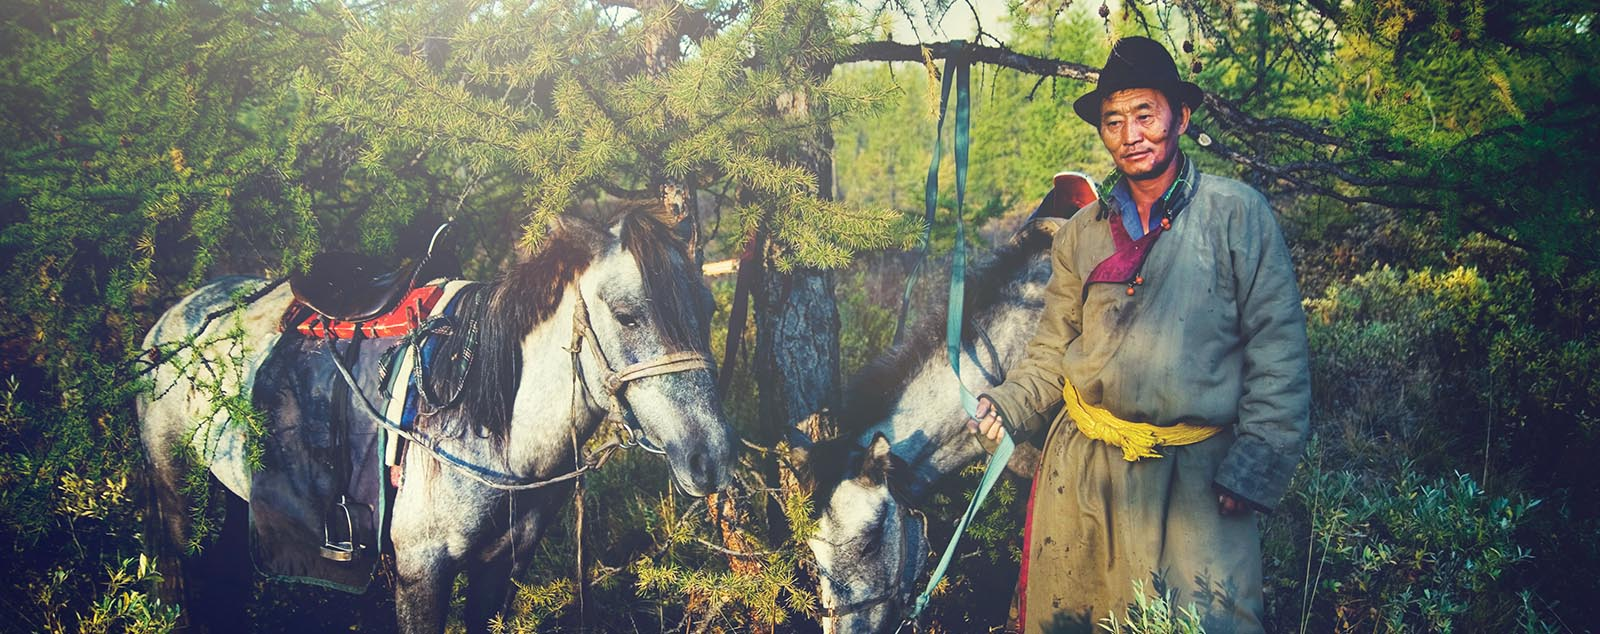 A traditionally dressed Mongolian man with his two horses surrounded by green trees